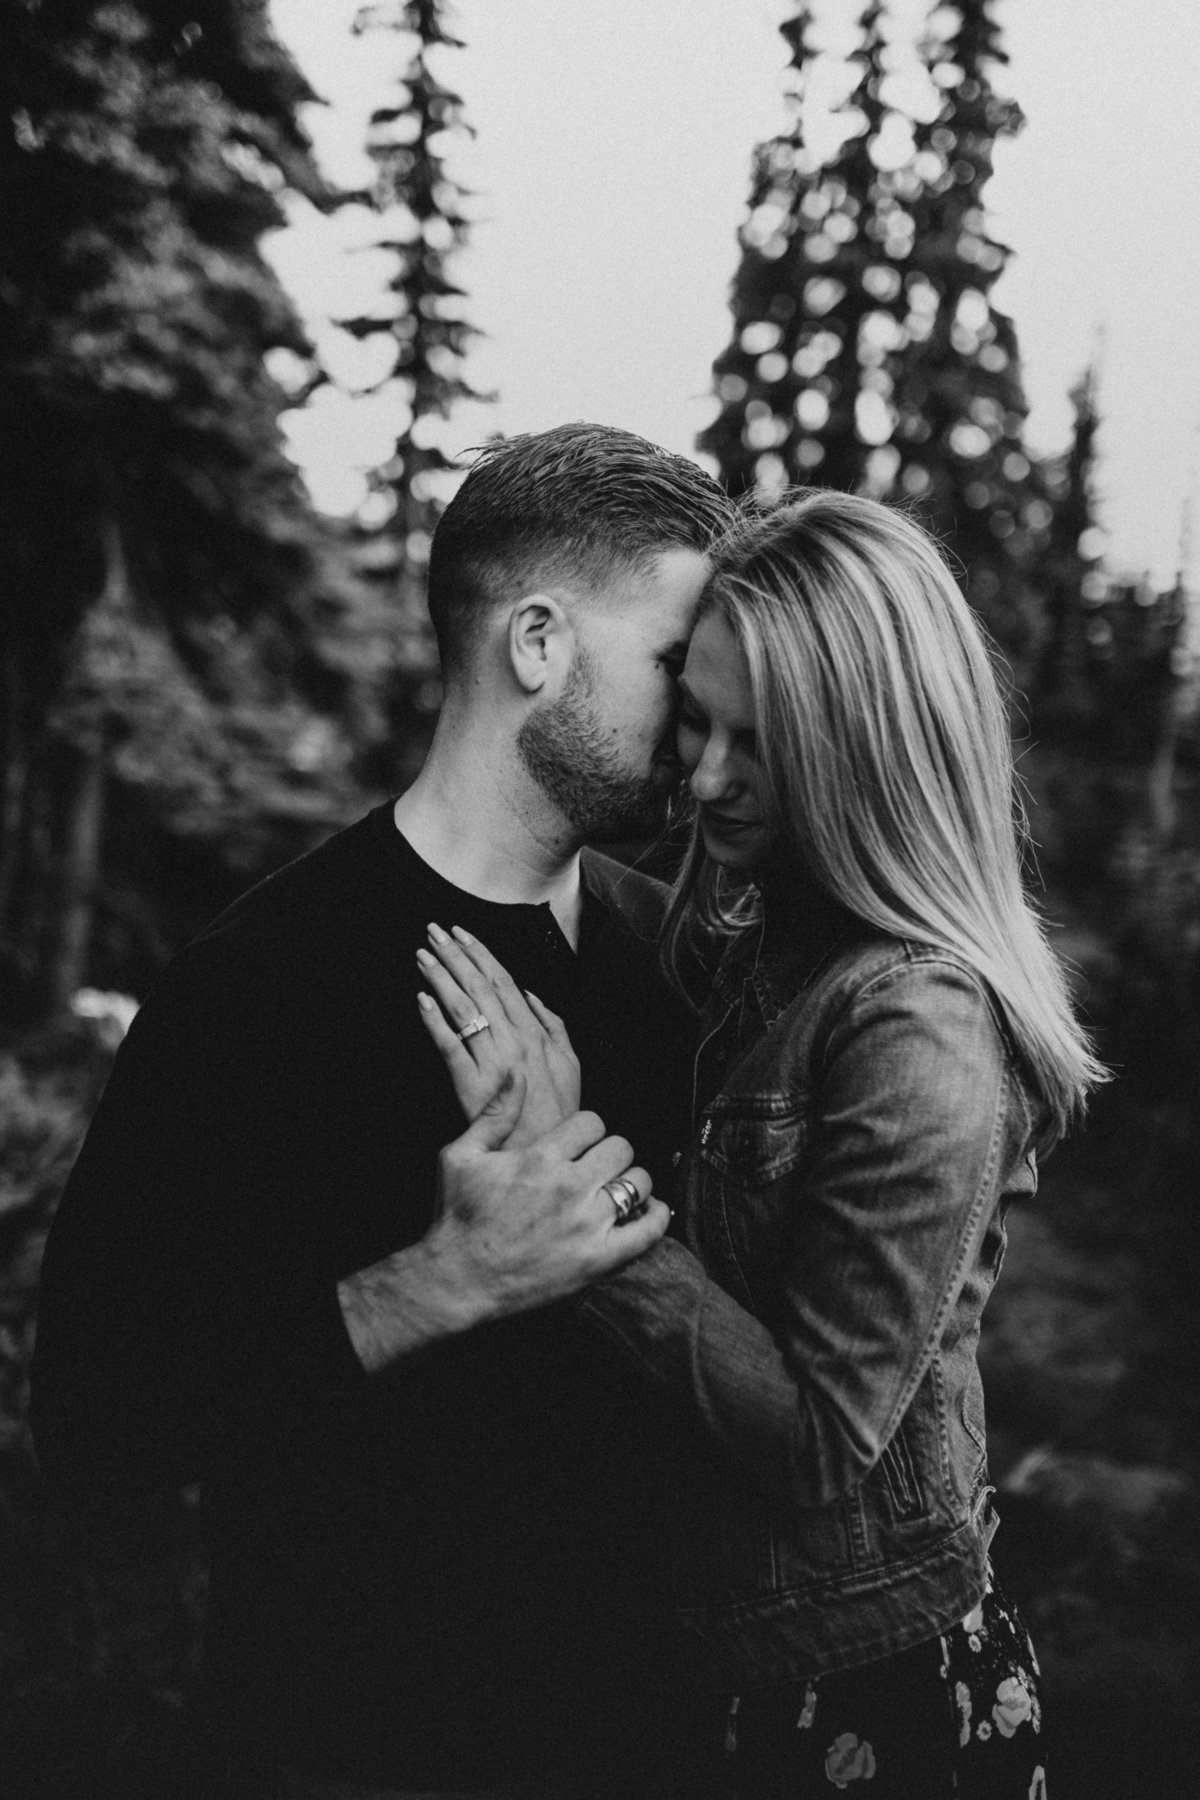 Marnie_Cornell_Photography_Engagement_Mount_Rainier_RK-13